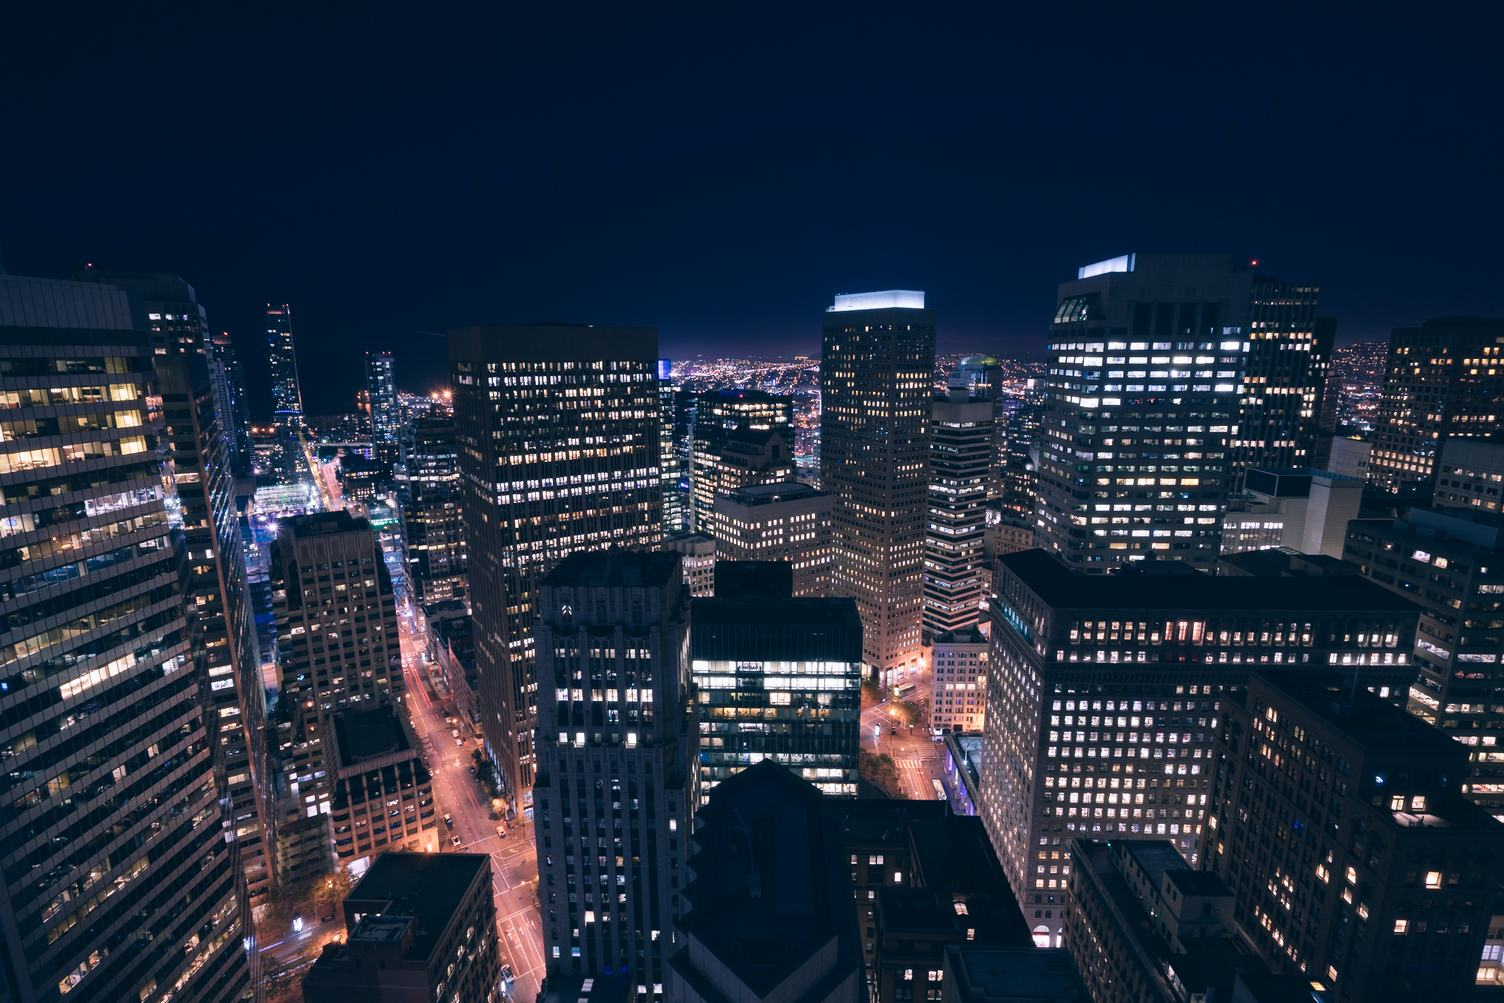 Skyscrapers in San Francisco at Night